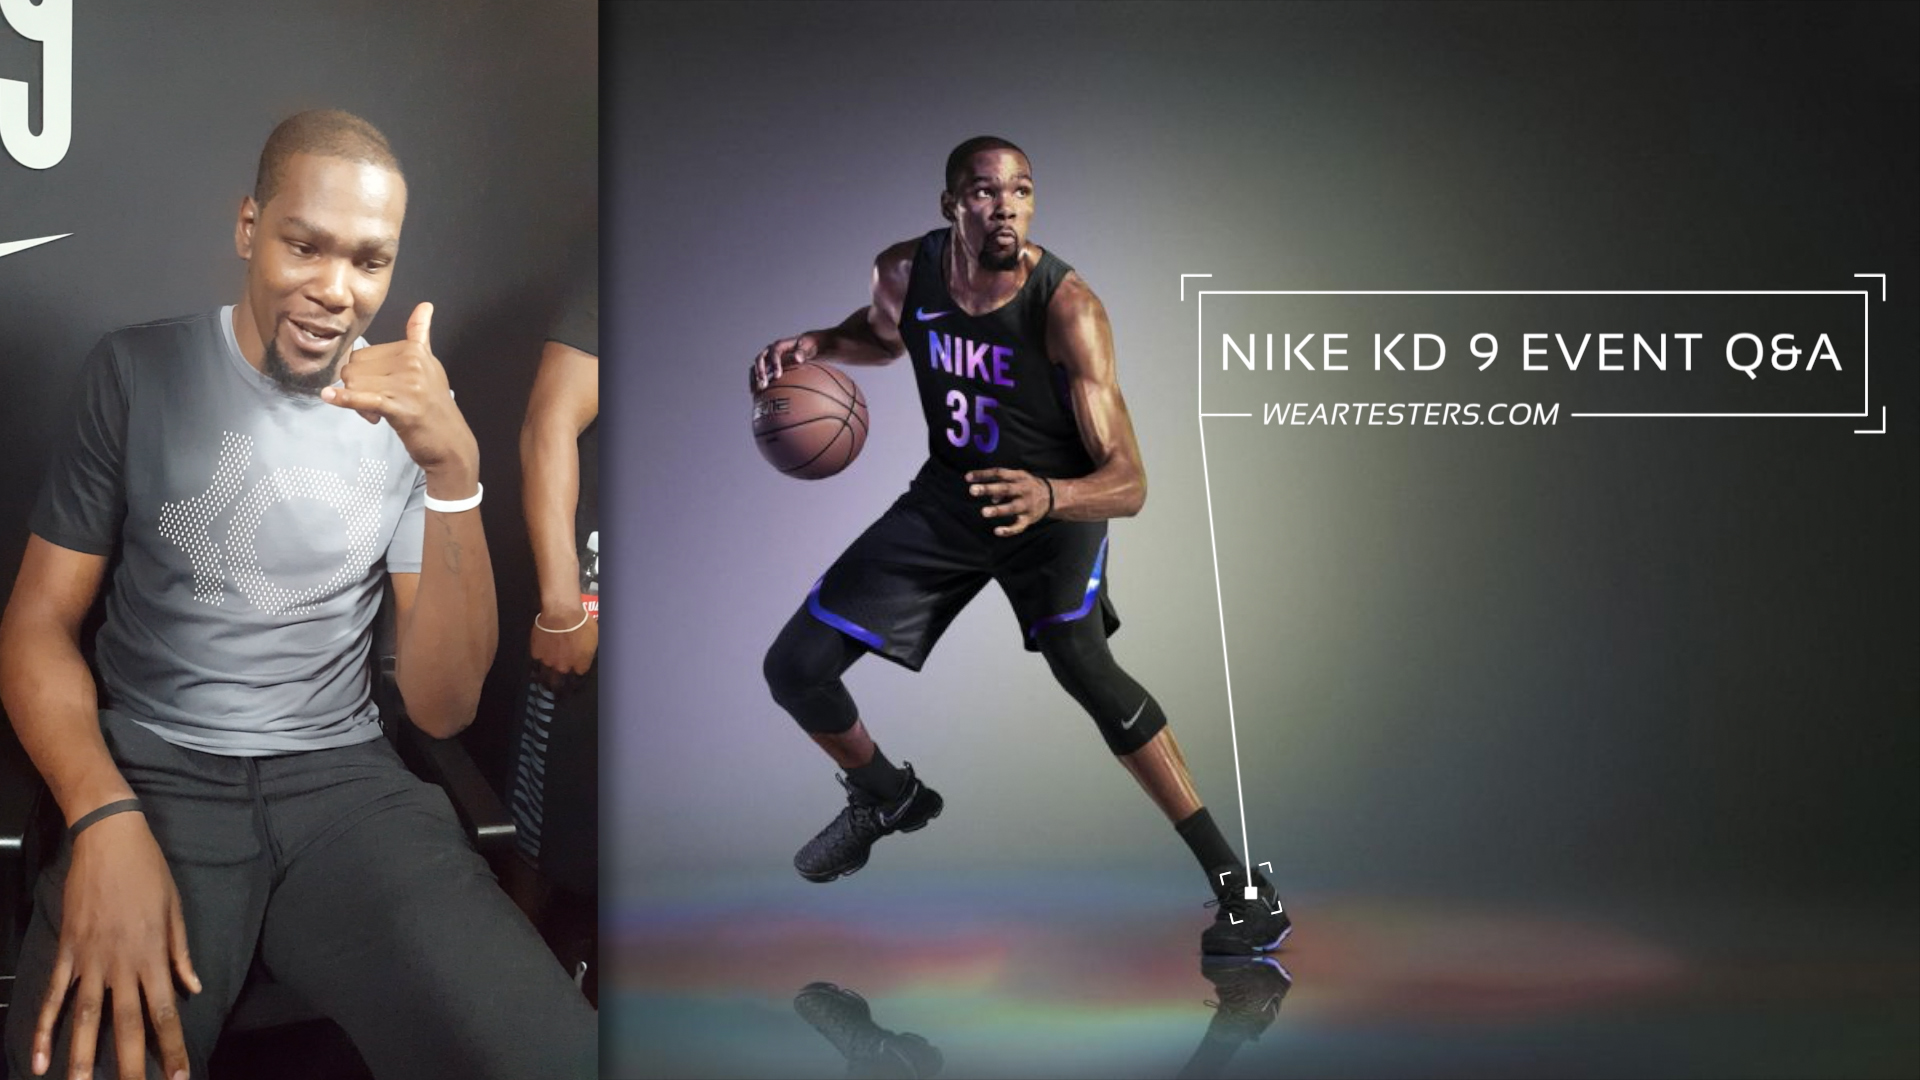 kd 9 weartesters Kevin Durant shoes on sale